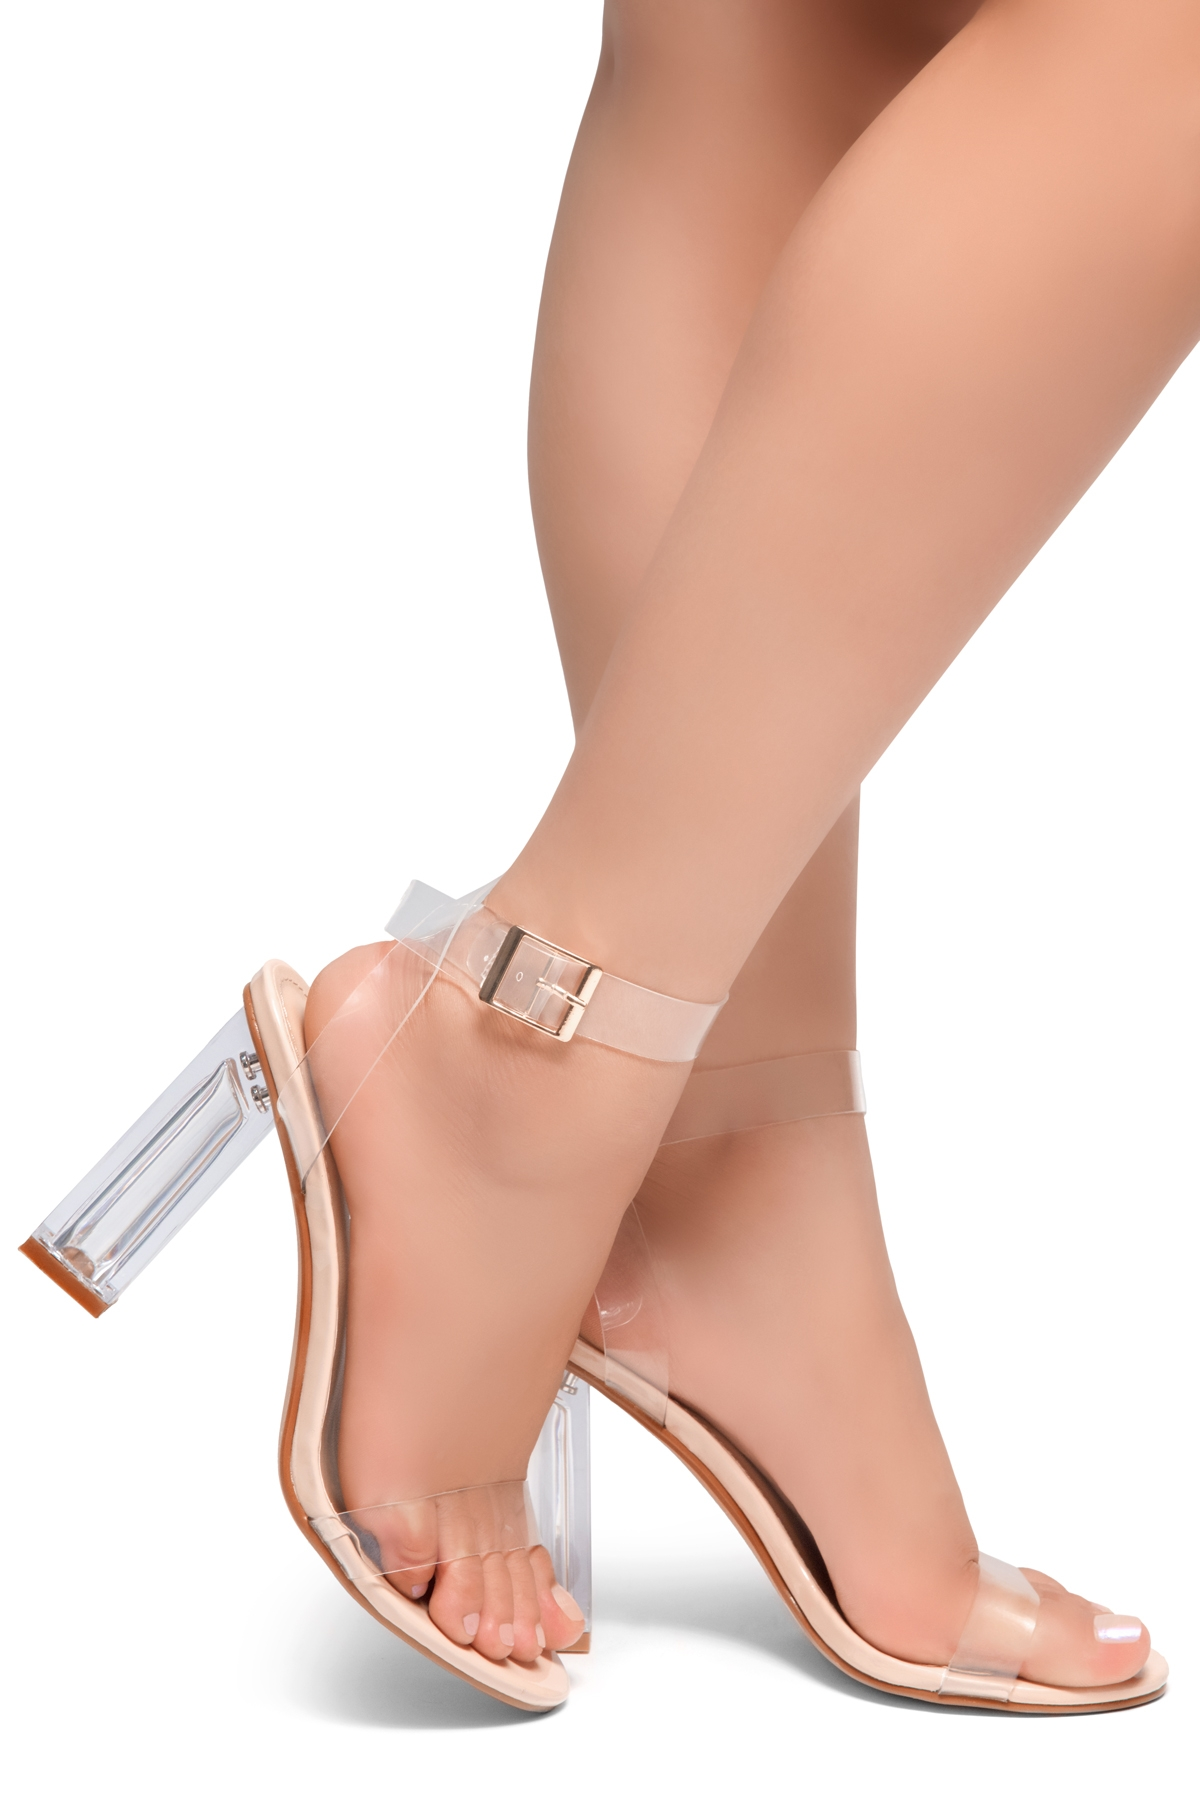 e0ce6890d74 HerStyle Cllaary Perspex heel, ankle strap with an adjustable buckle (Clear  Nude)